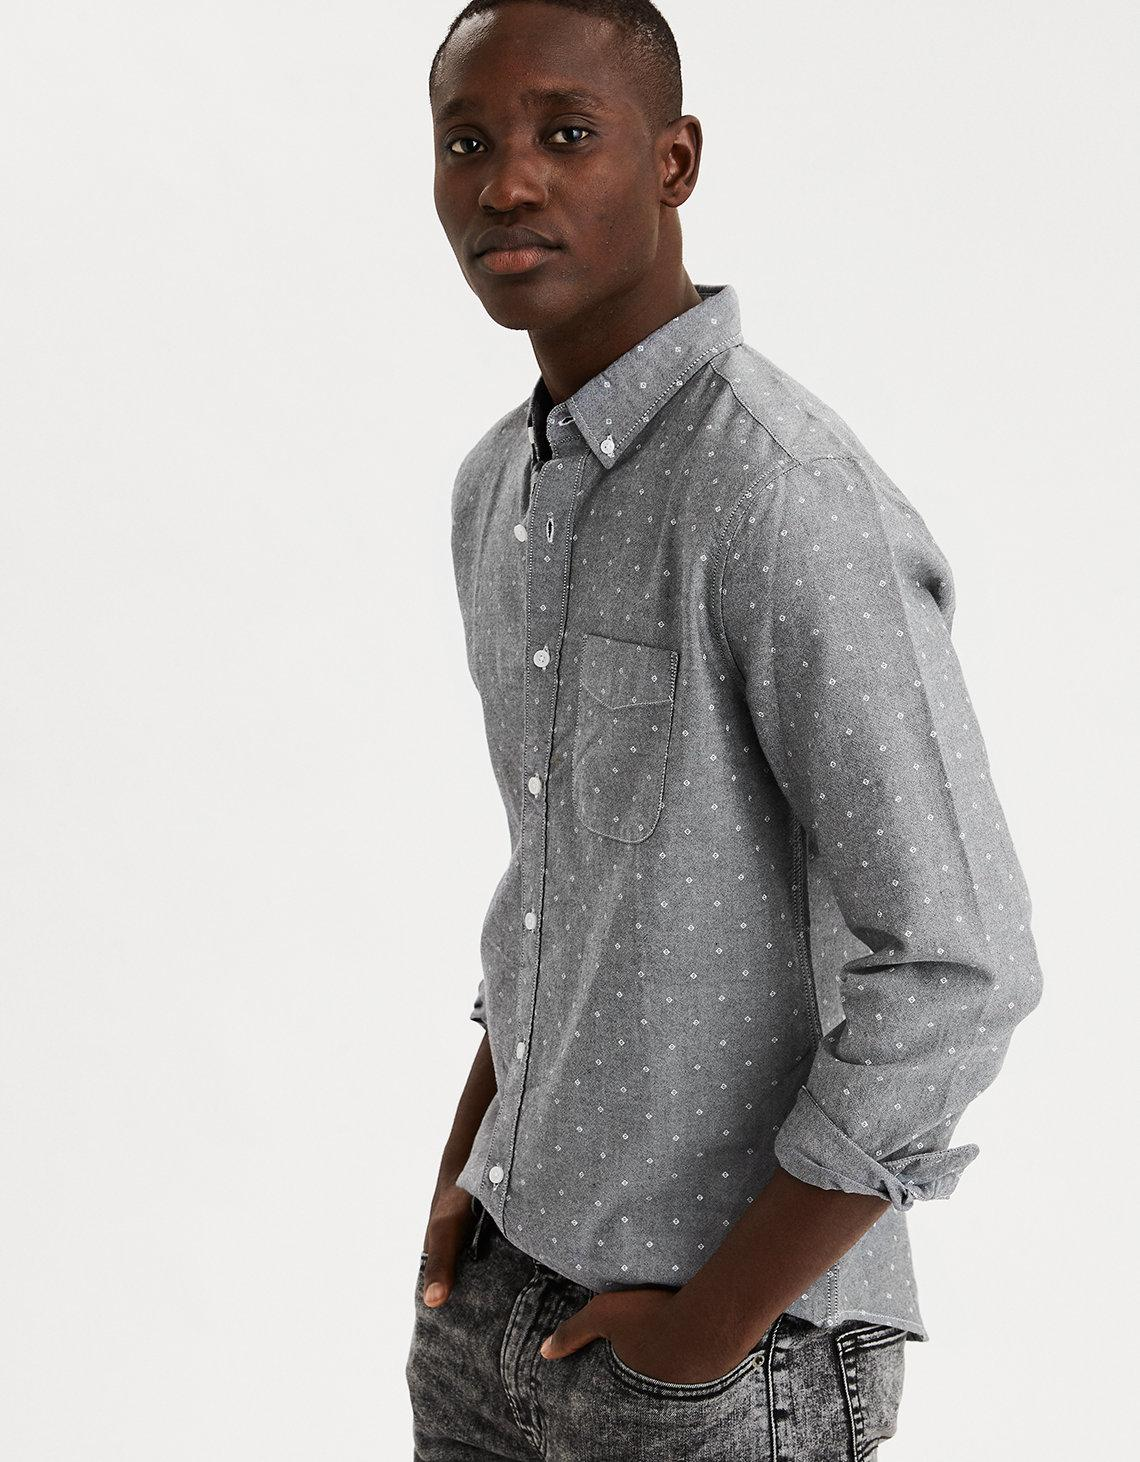 ee4be25f American Eagle Ae Long Sleeve Printed Oxford Button Down Shirt in ...